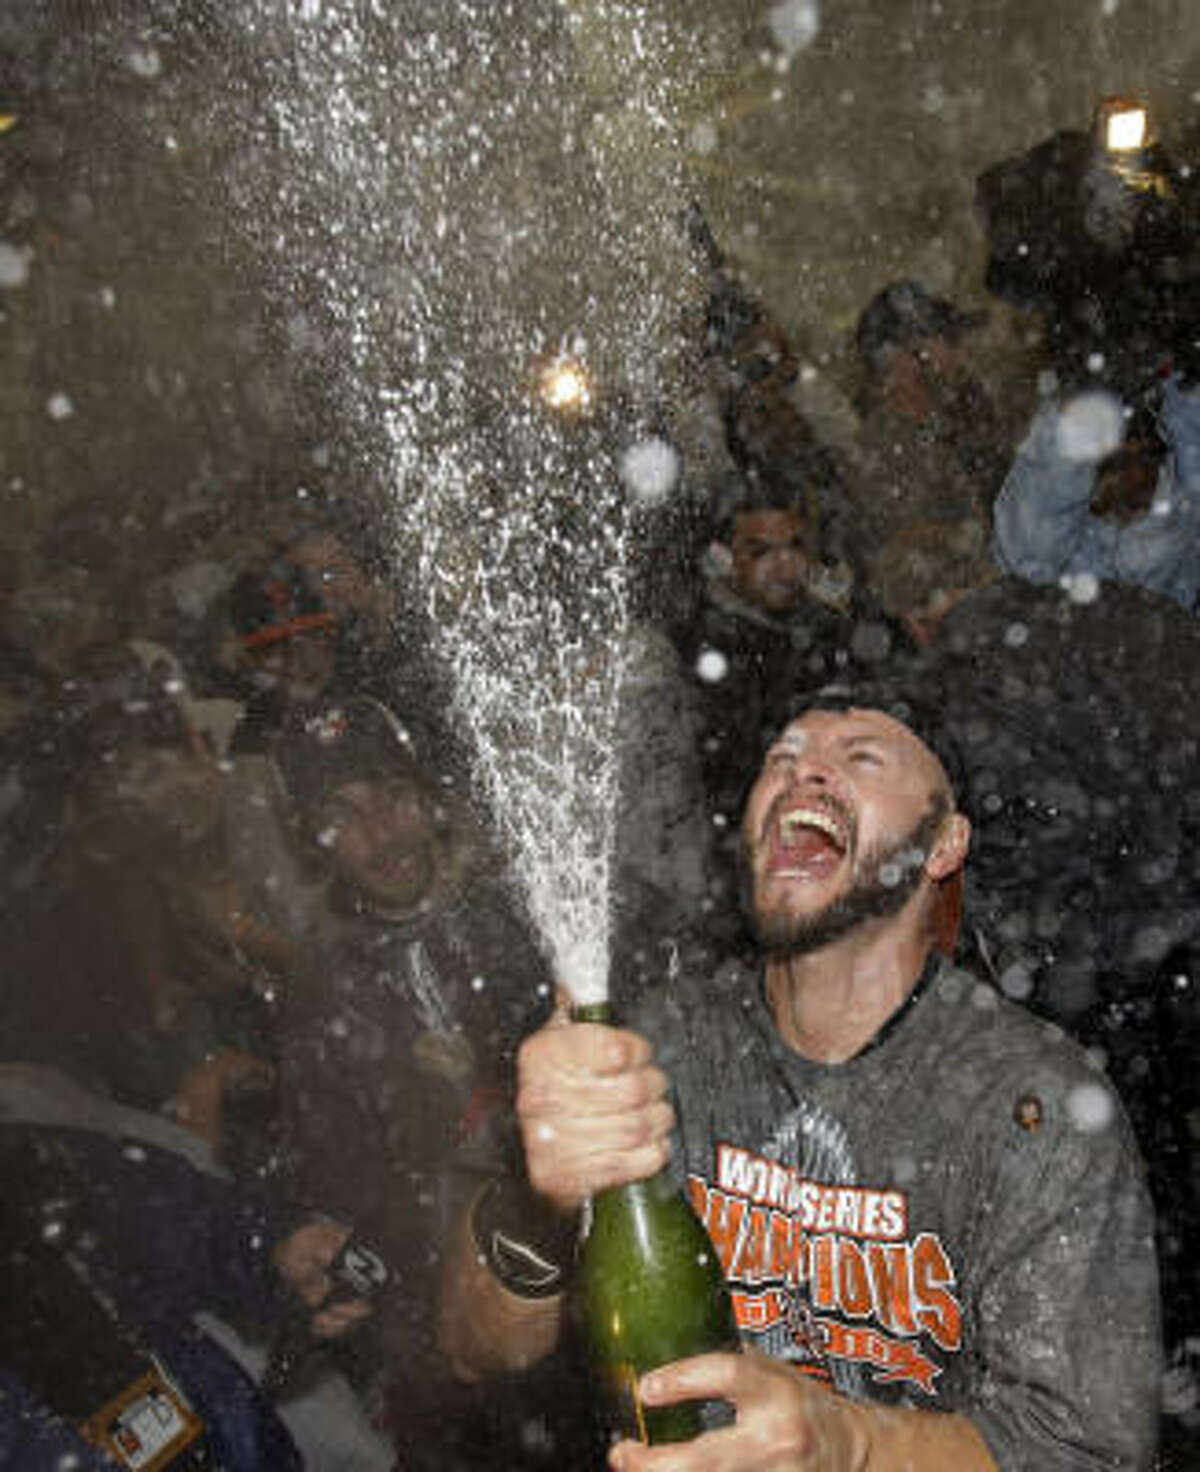 Giants left fielder Cody Ross sprays champagne to celebrate the victory.